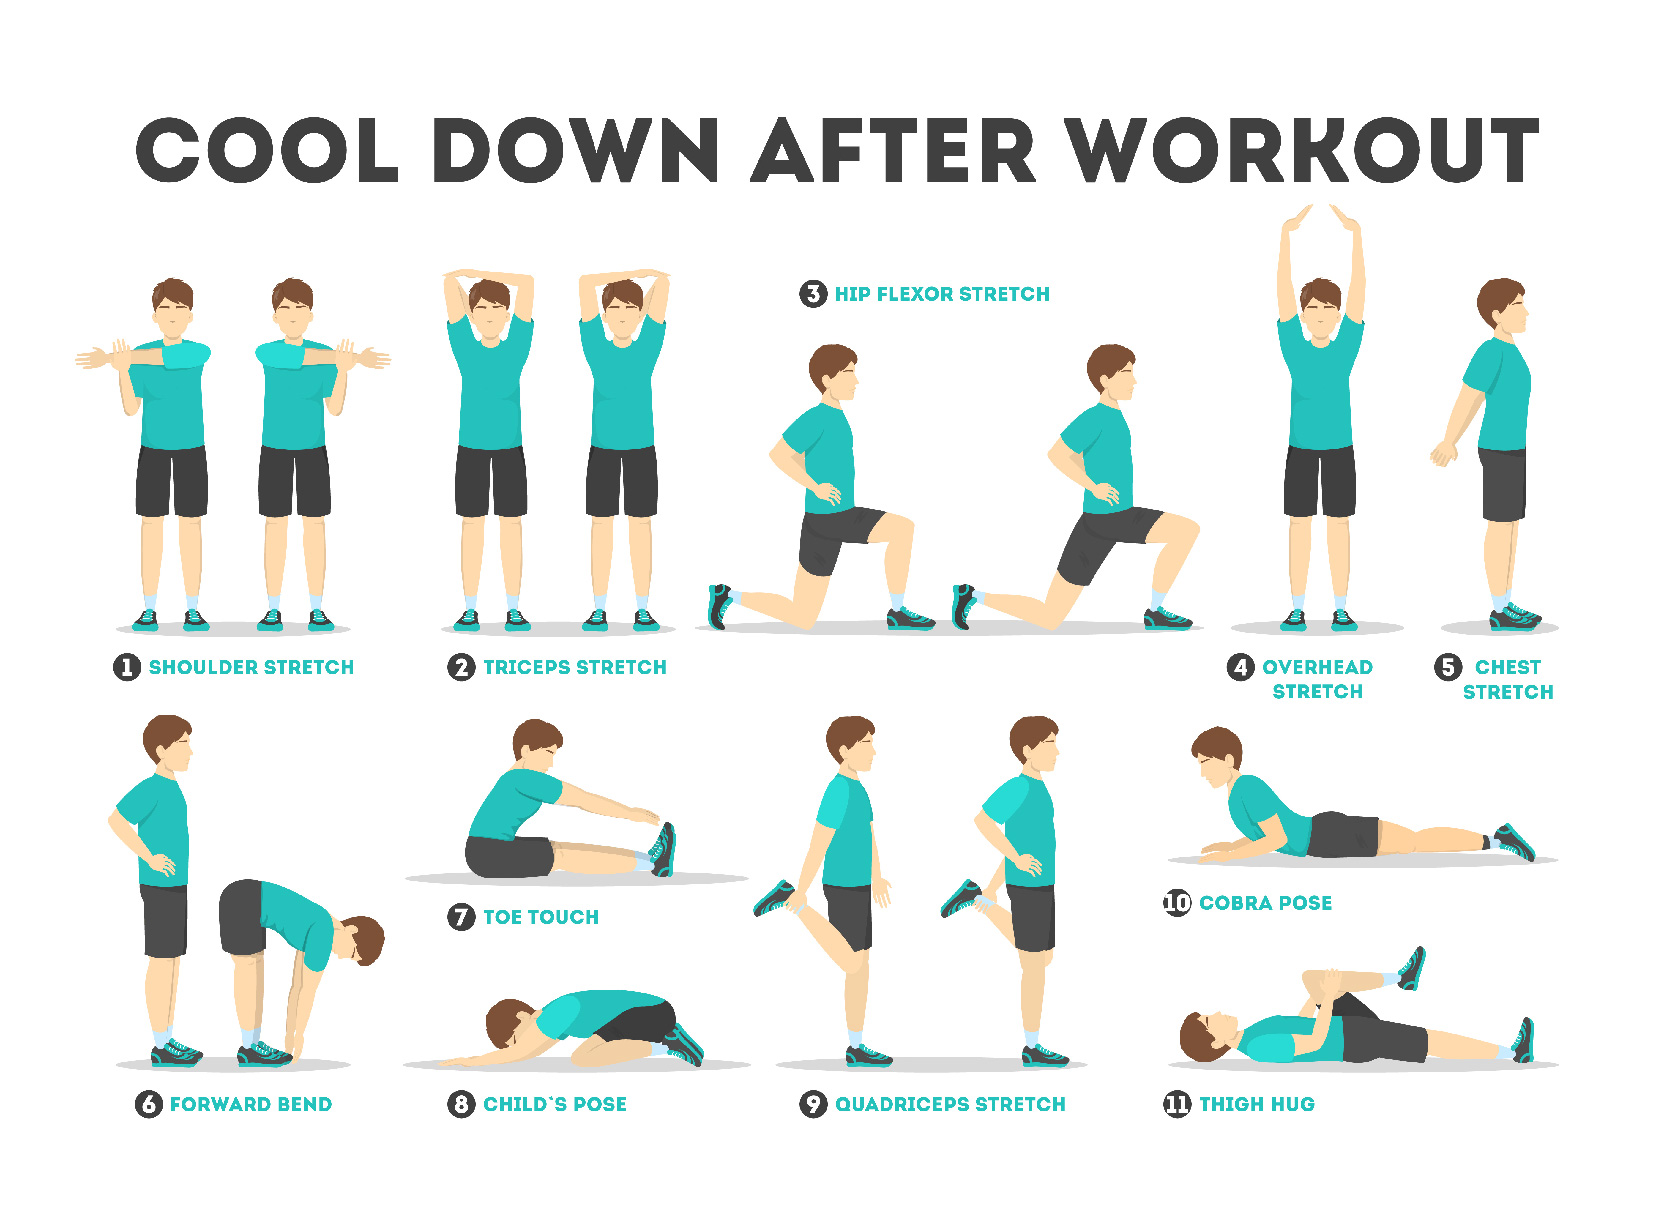 Warm up and Cool down Stretching Execises | โรงพยาบาลเปาโล - Paolo Hospital